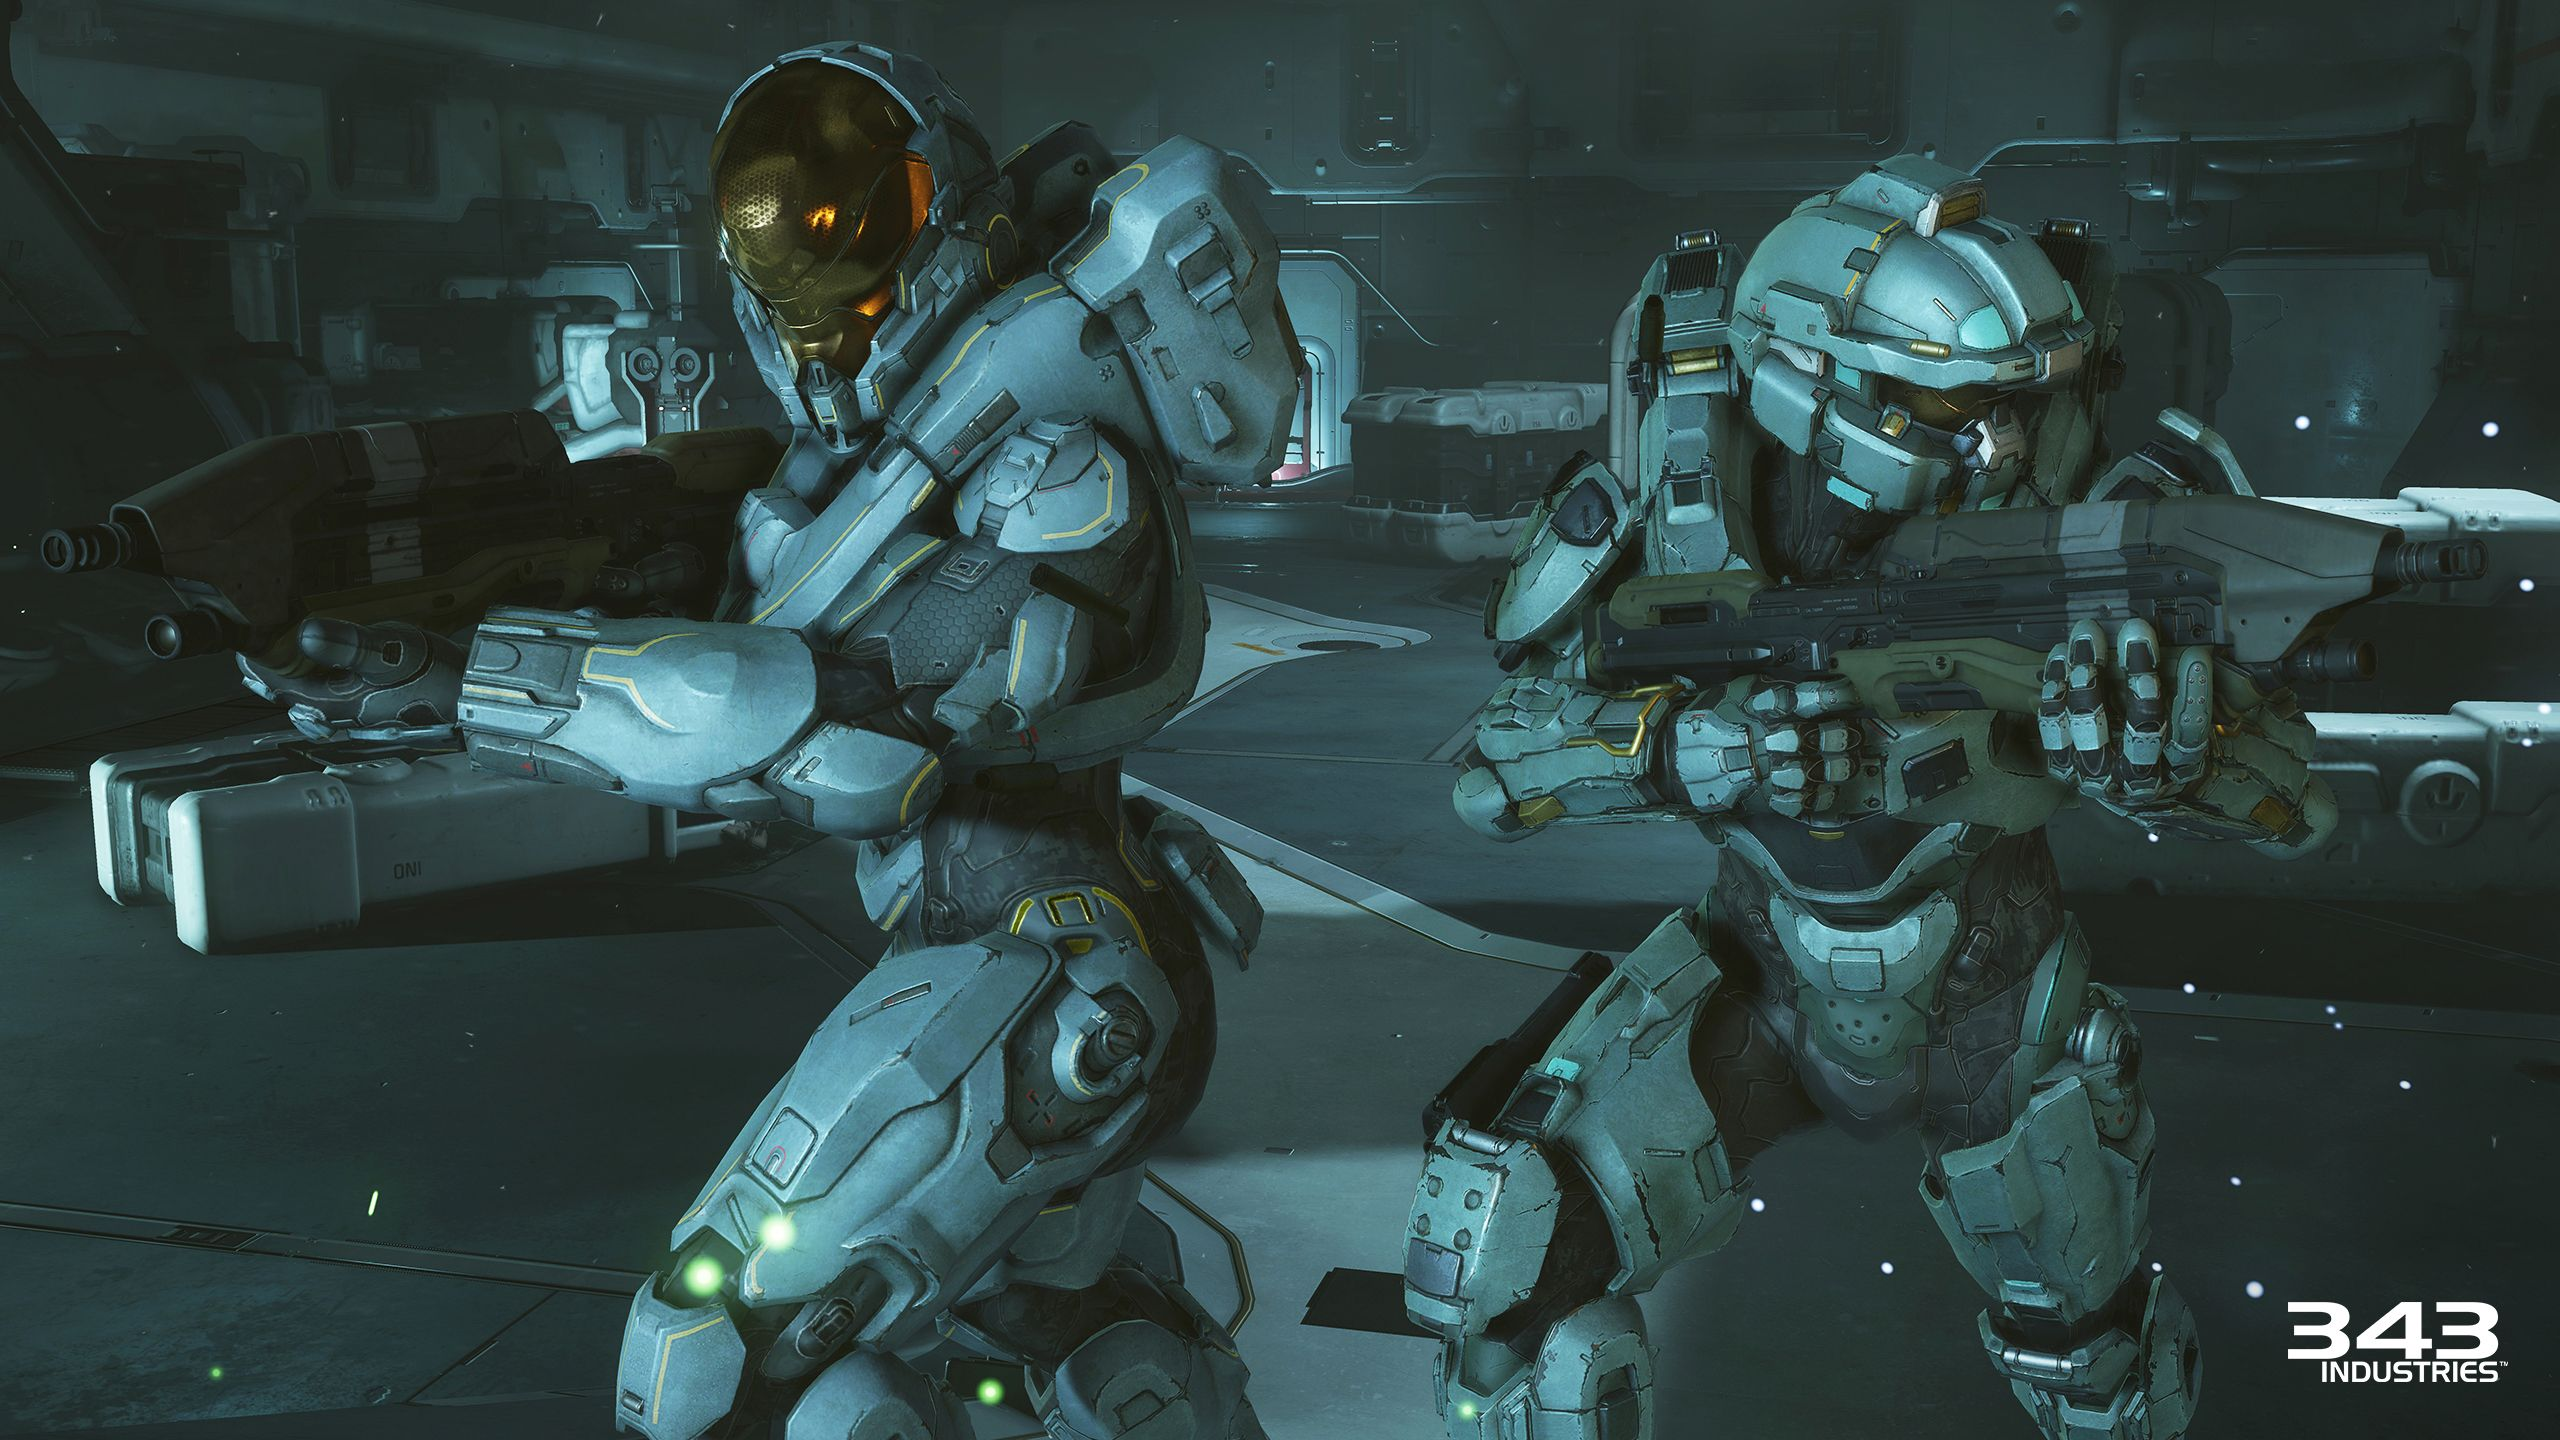 Halo 5 Guardians Blue Team Fred And Kelly Halo 5 Halo 5